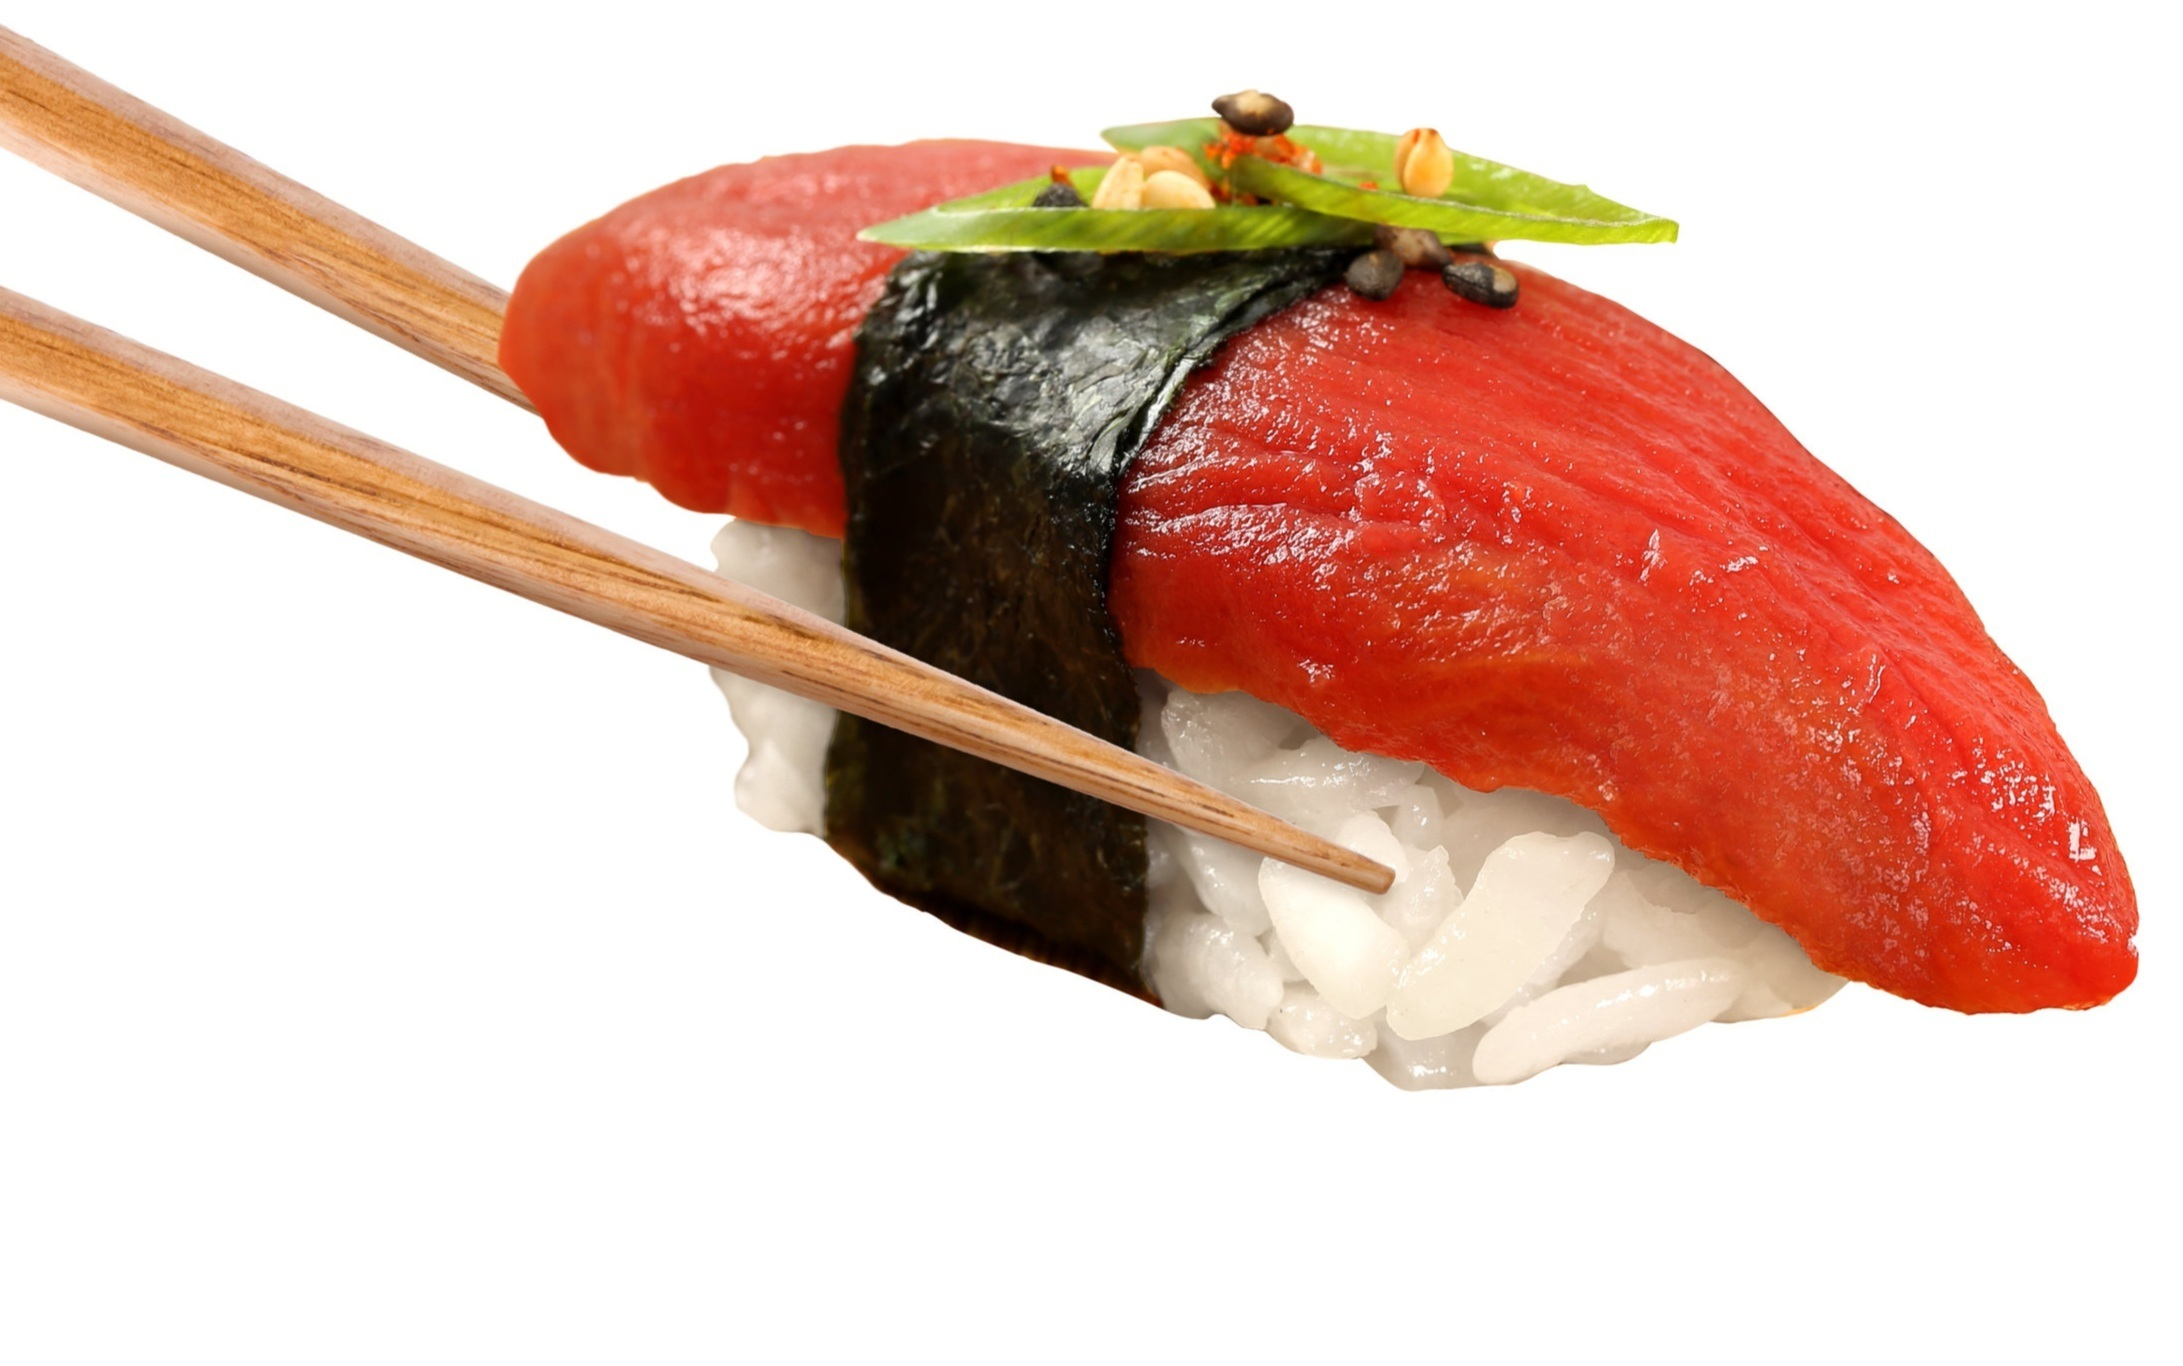 PRINT_12x18_300dpi_Nigiri_2213_Isolated_WithChopsticks.jpg